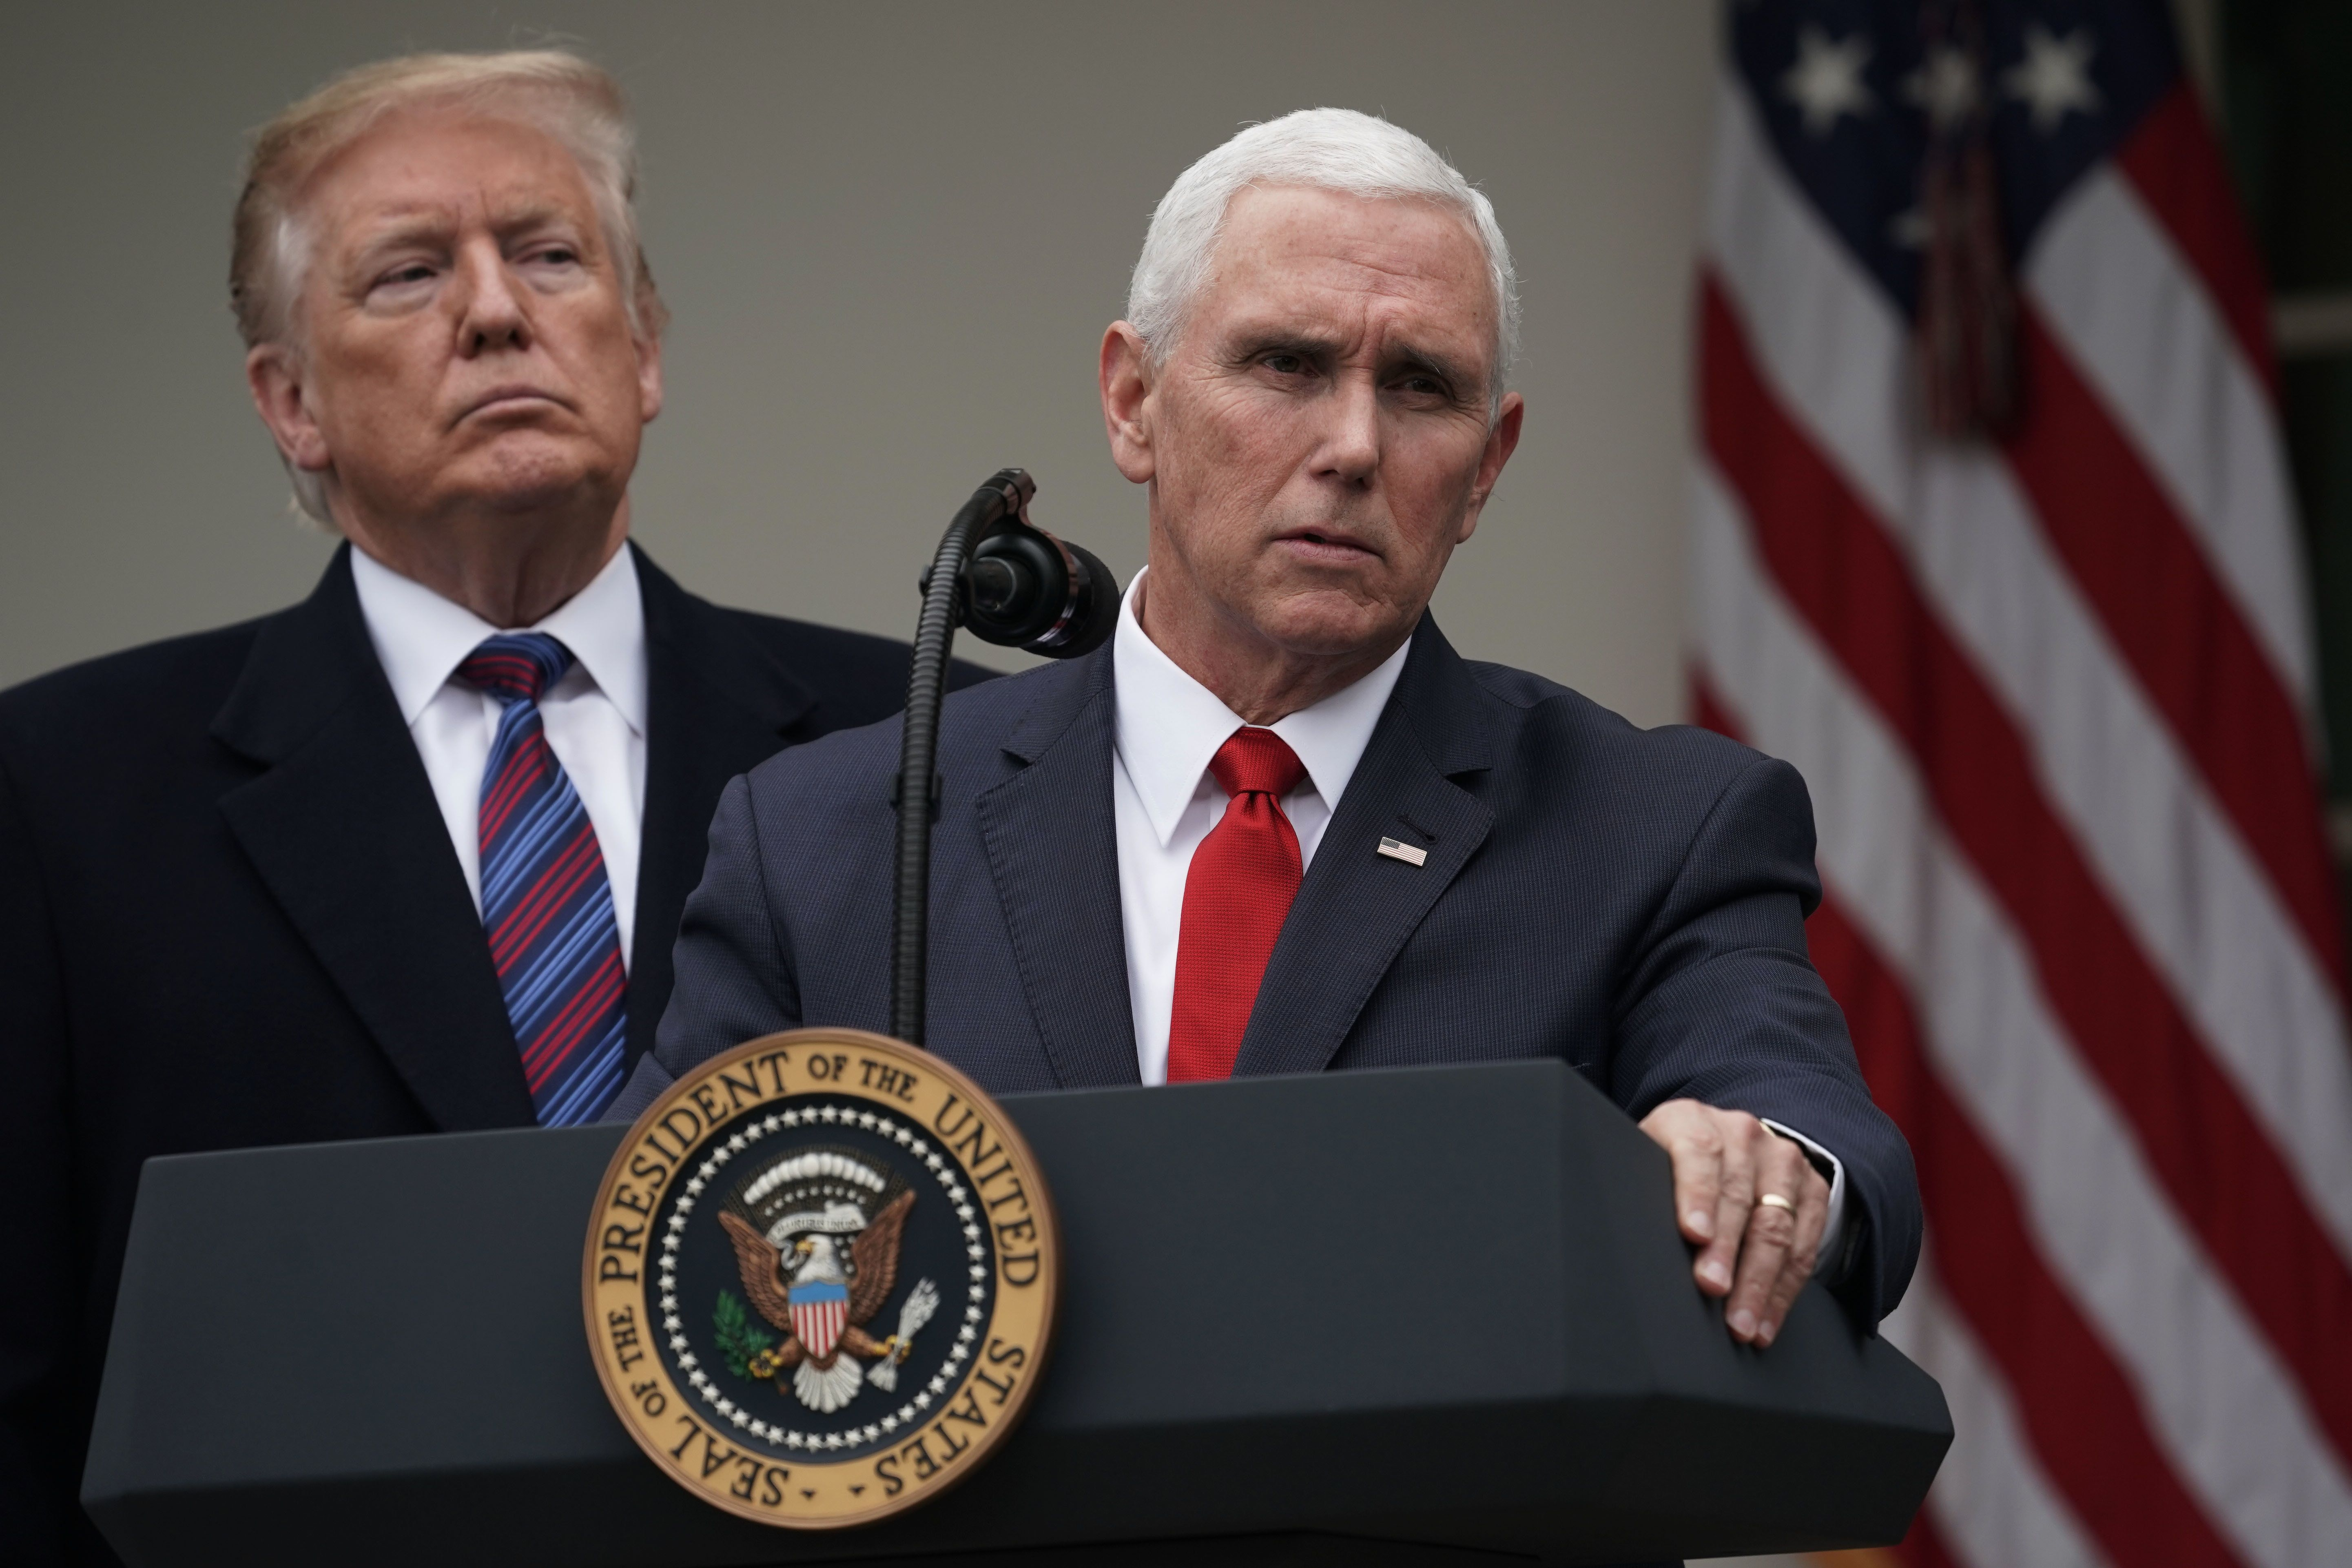 WASHINGTON, DC - JANUARY 04:  U.S. Vice President Mike Pence (R) speaks as President Donald Trump (L) listens in the Rose Garden of the White House on January 4, 2019 in Washington, DC. Trump hosted both Democratic and Republican lawmakers at the White House for the second meeting in three days as the government shutdown heads into its third week.  (Photo by Alex Wong/Getty Images)